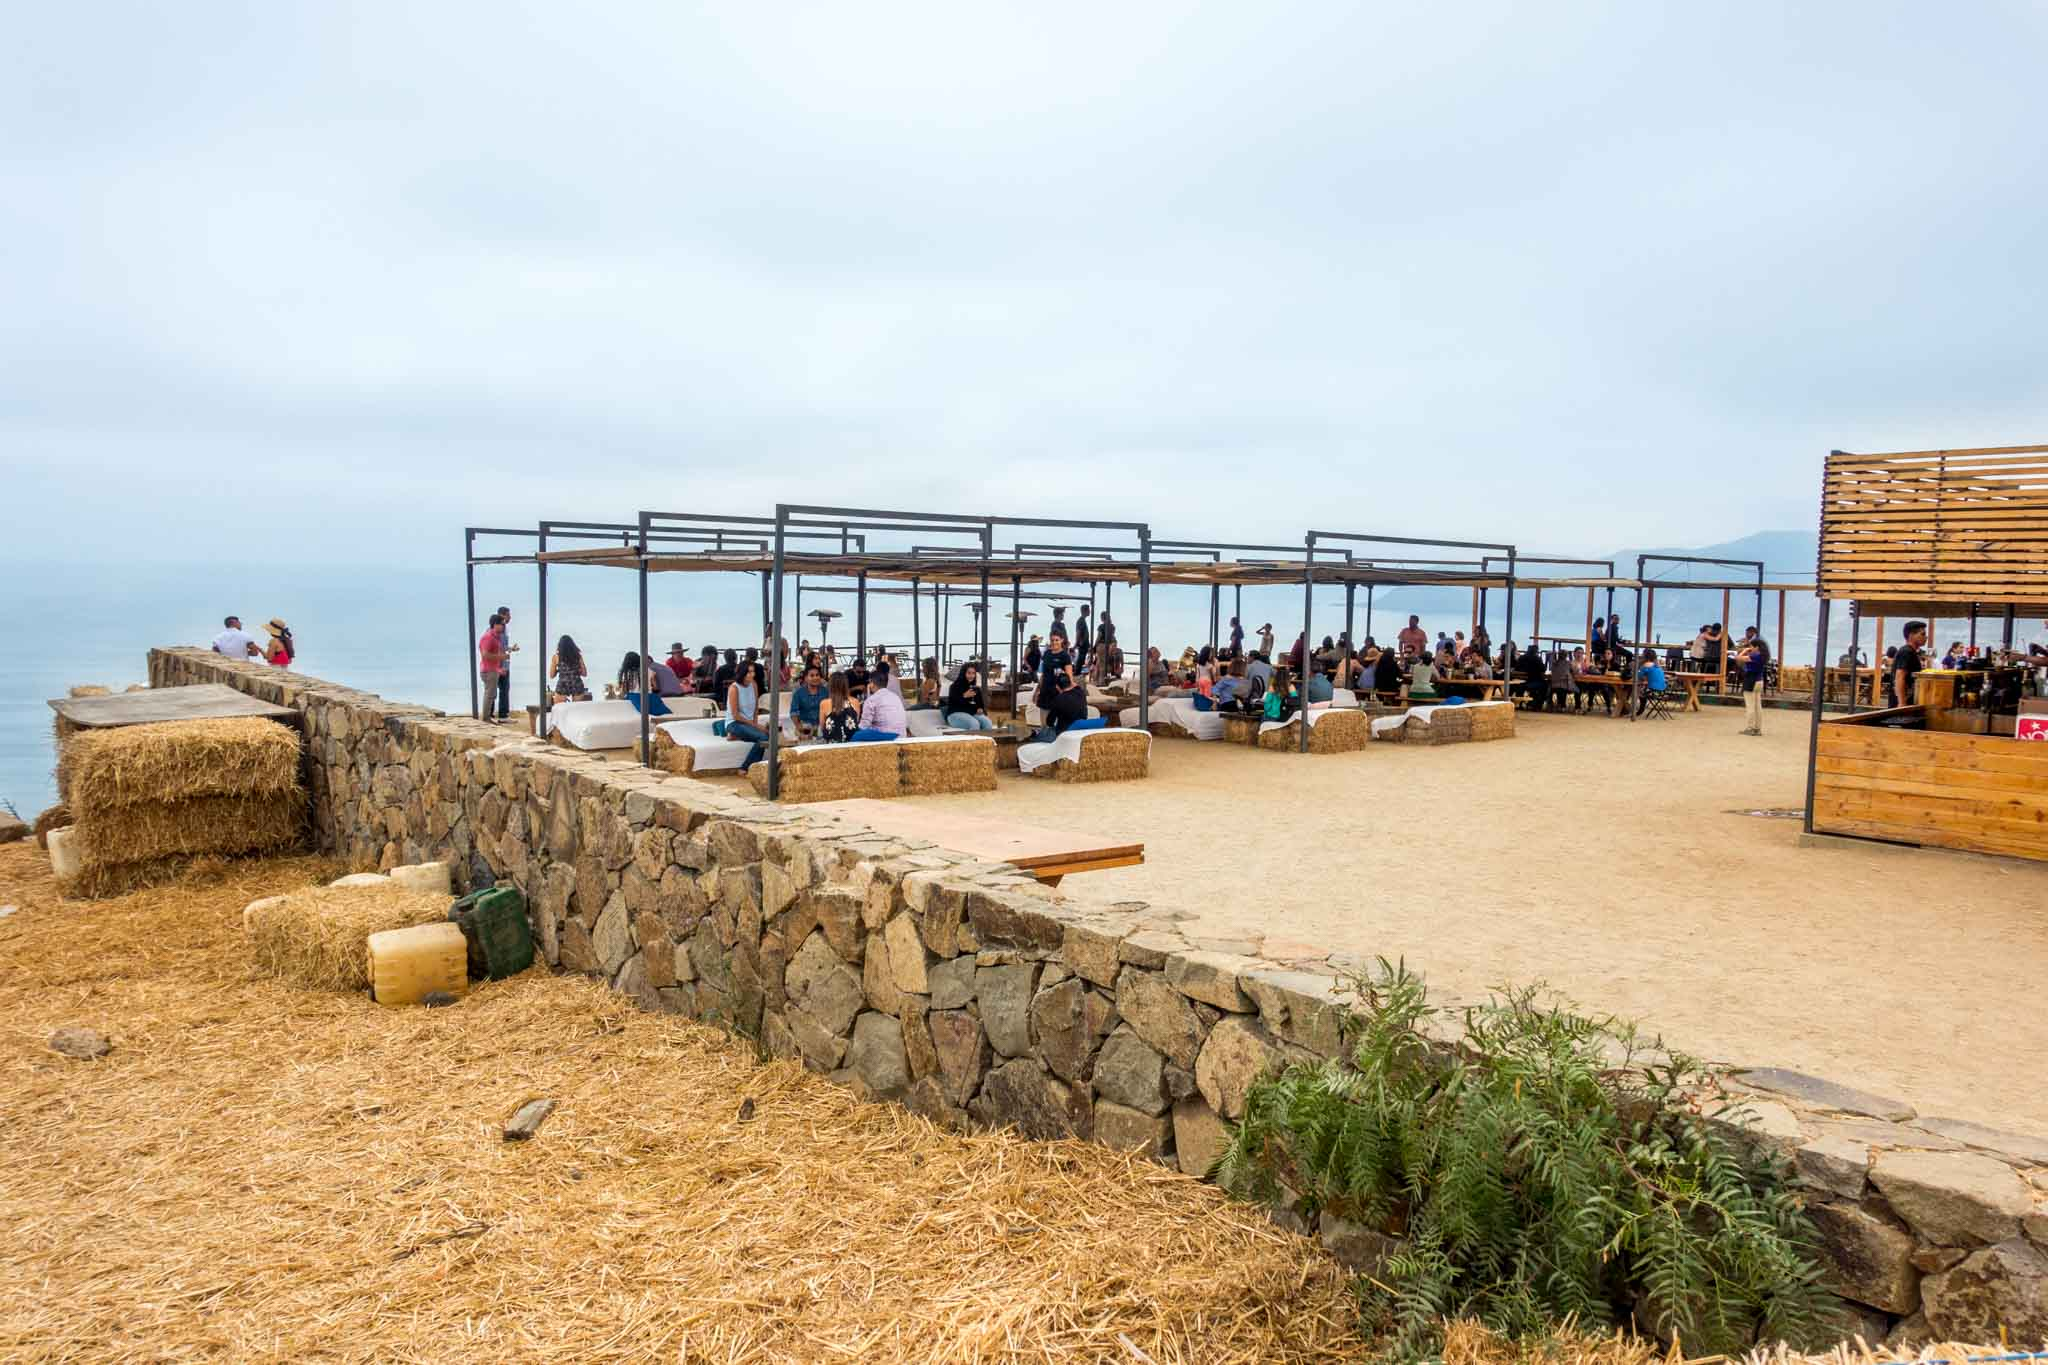 People enjoying views of the Pacific Ocean from Bar Bura at Cuatro Cuatros